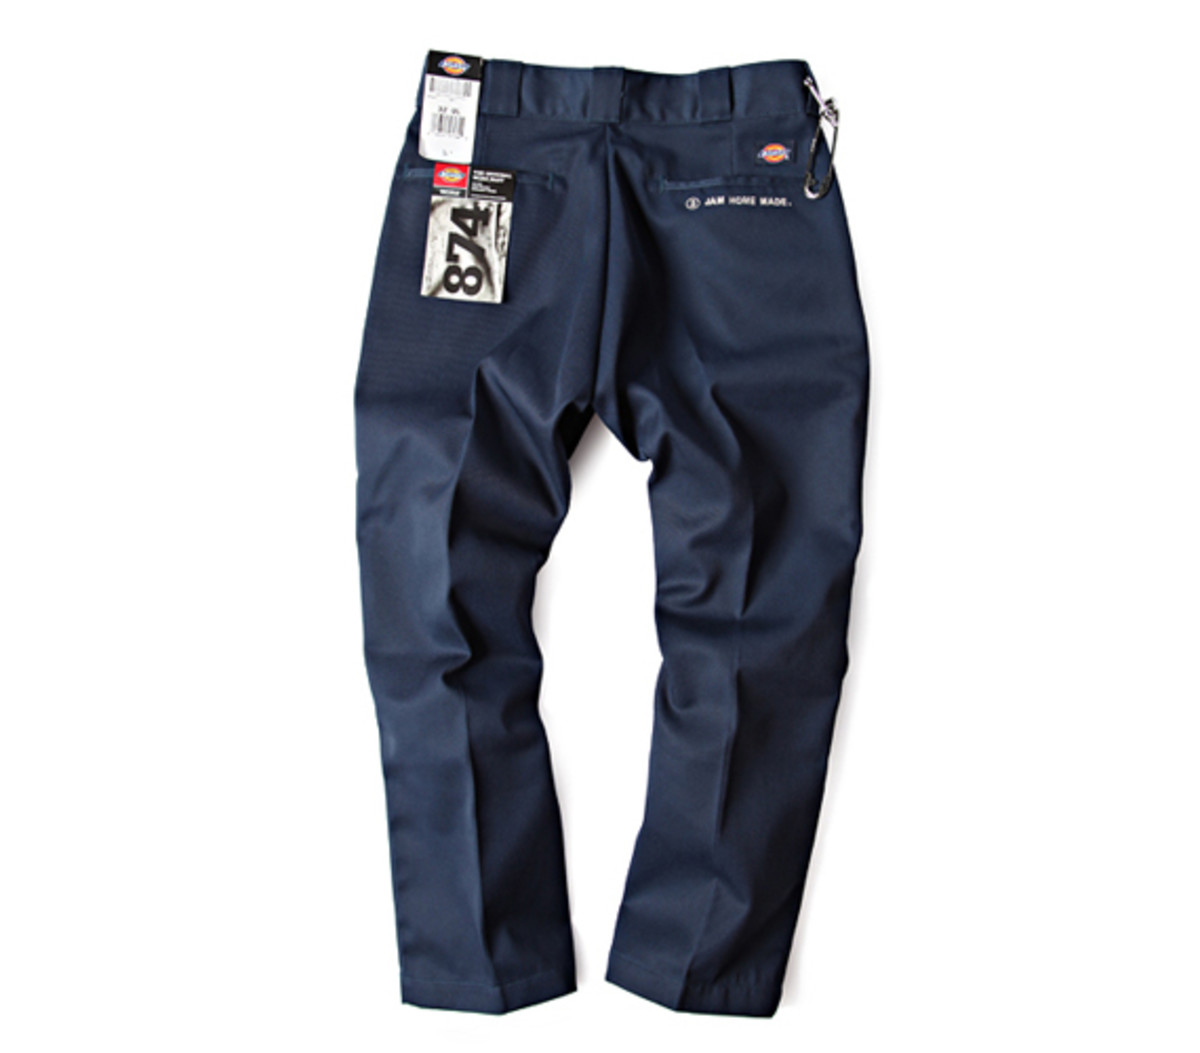 jam-home-made-dickies-customized-jodhpurs-work-pants-02